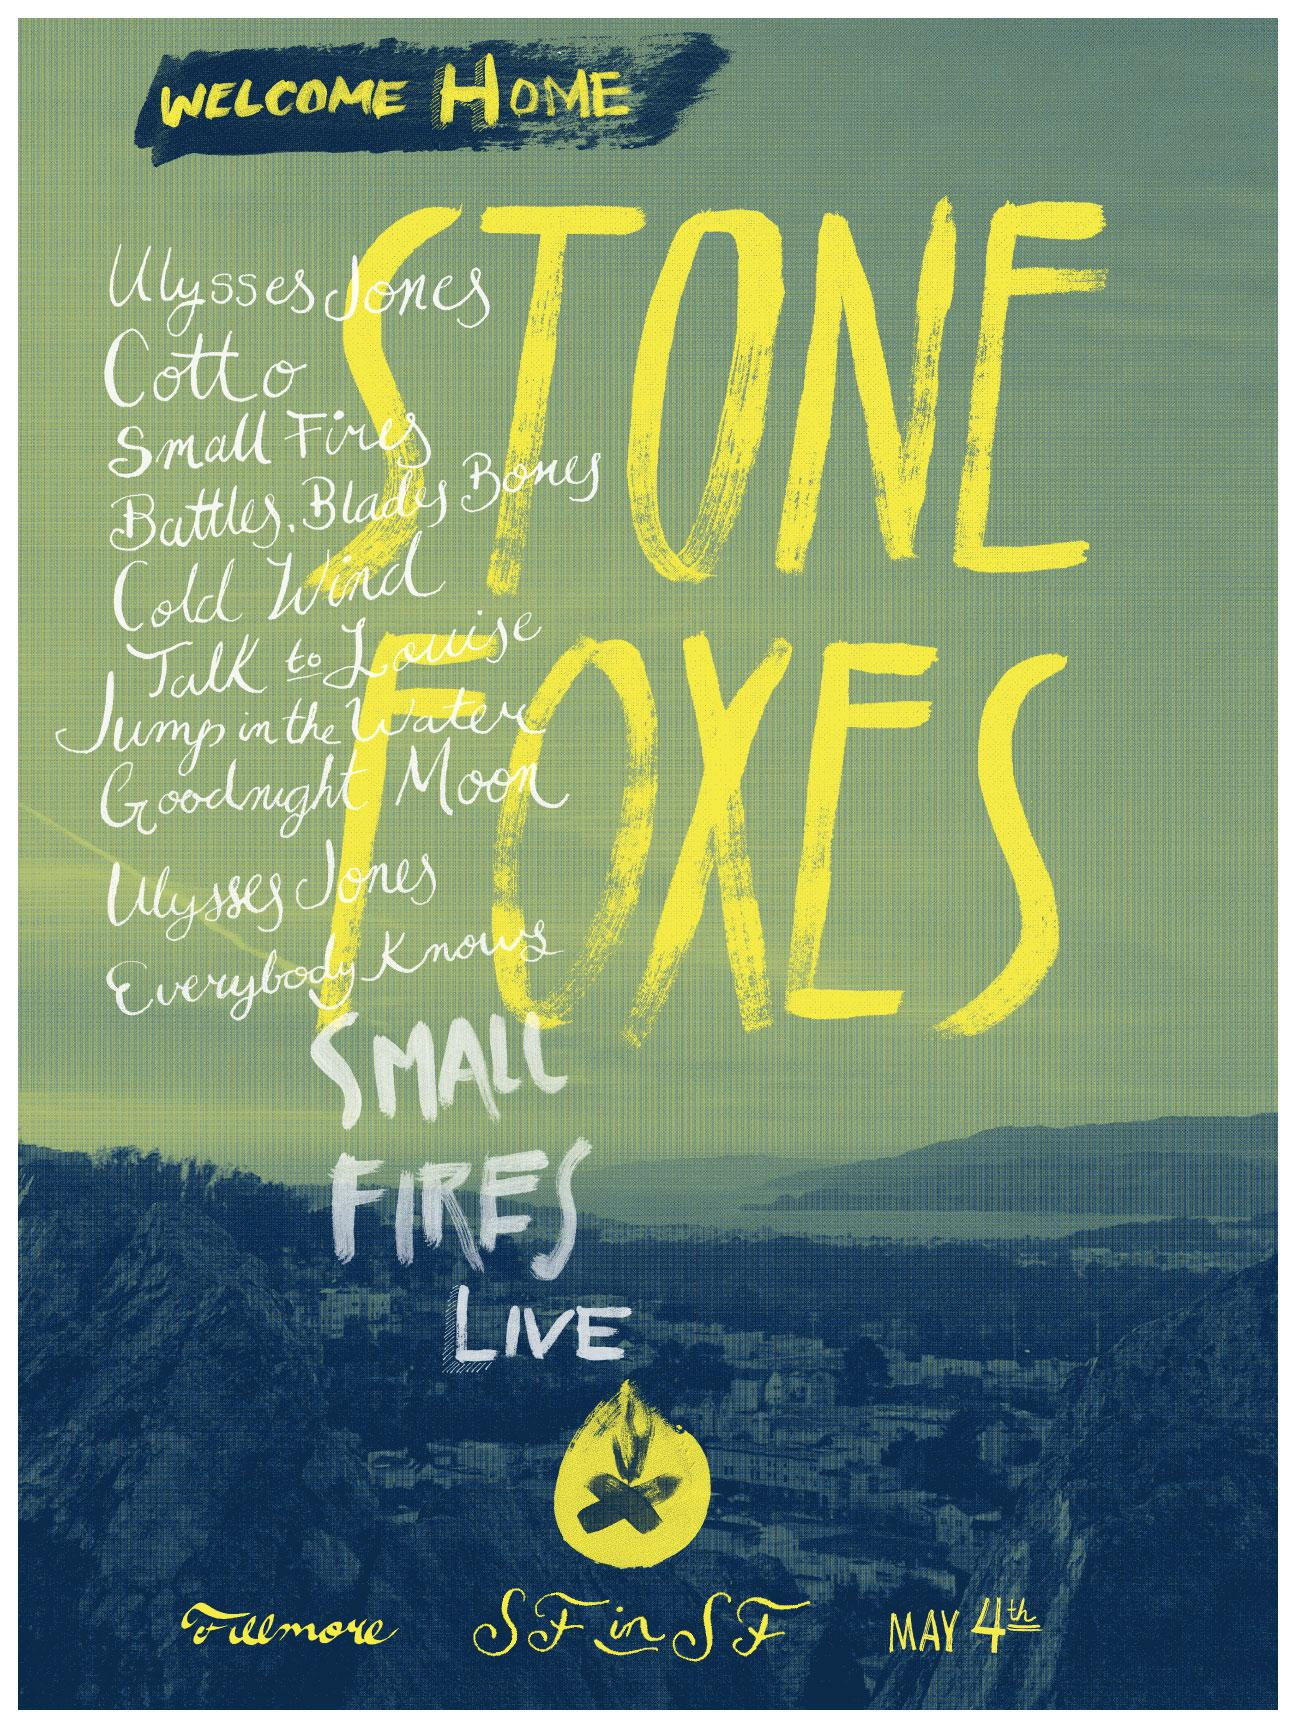 The Stone Foxes - A Homecoming Poster - image 4 - student project